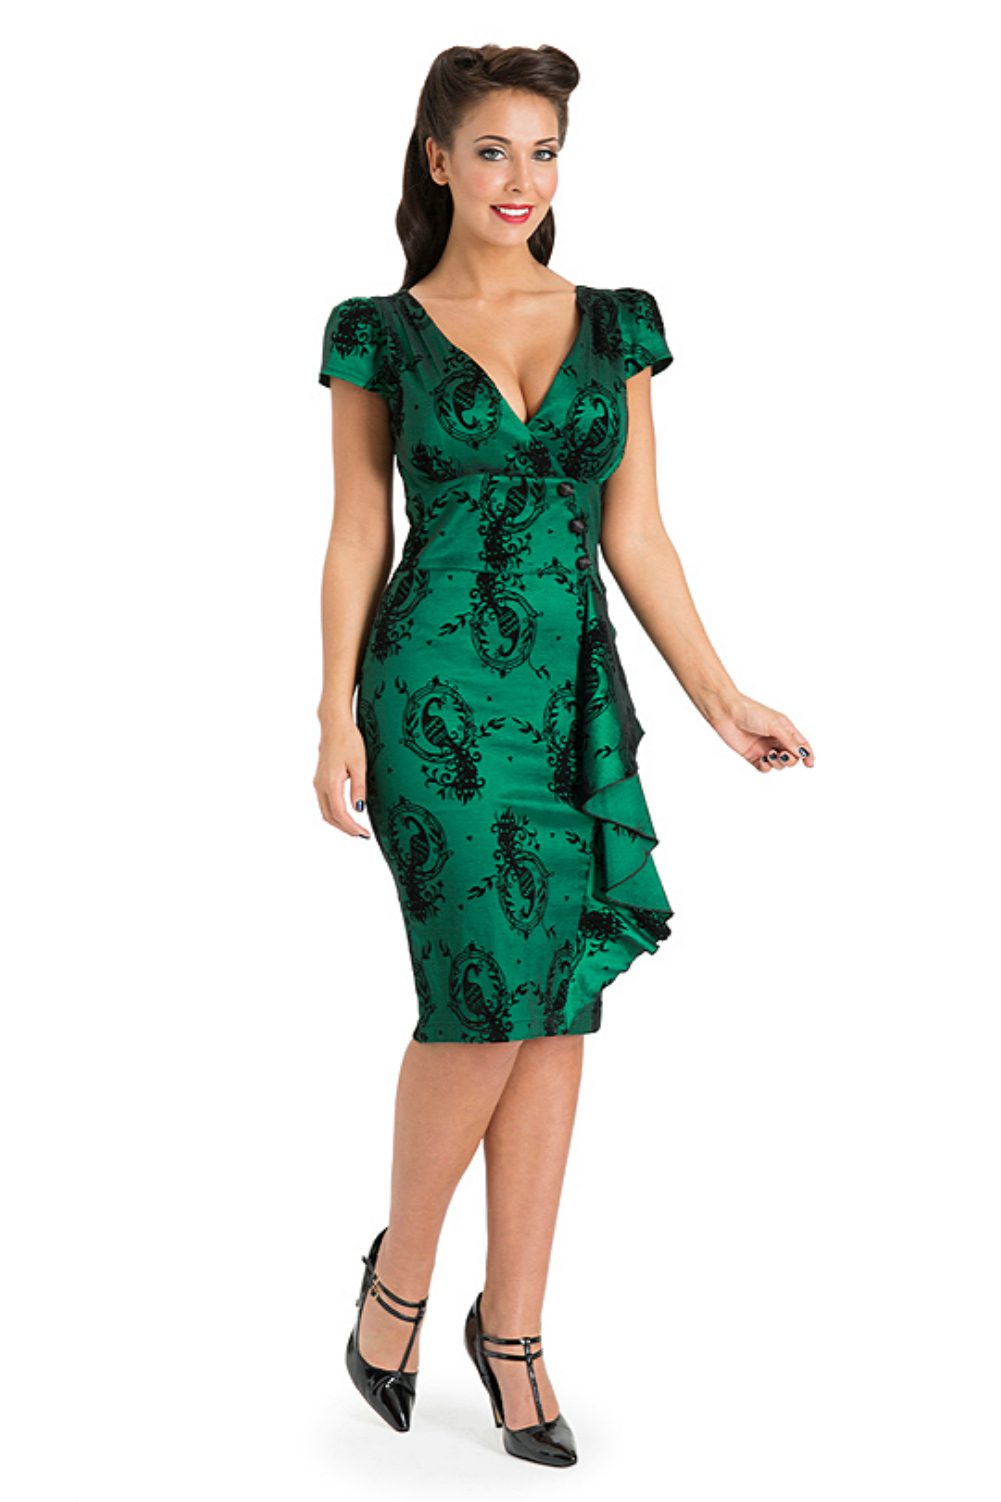 Voodoo Vixen Candy Ann Dress